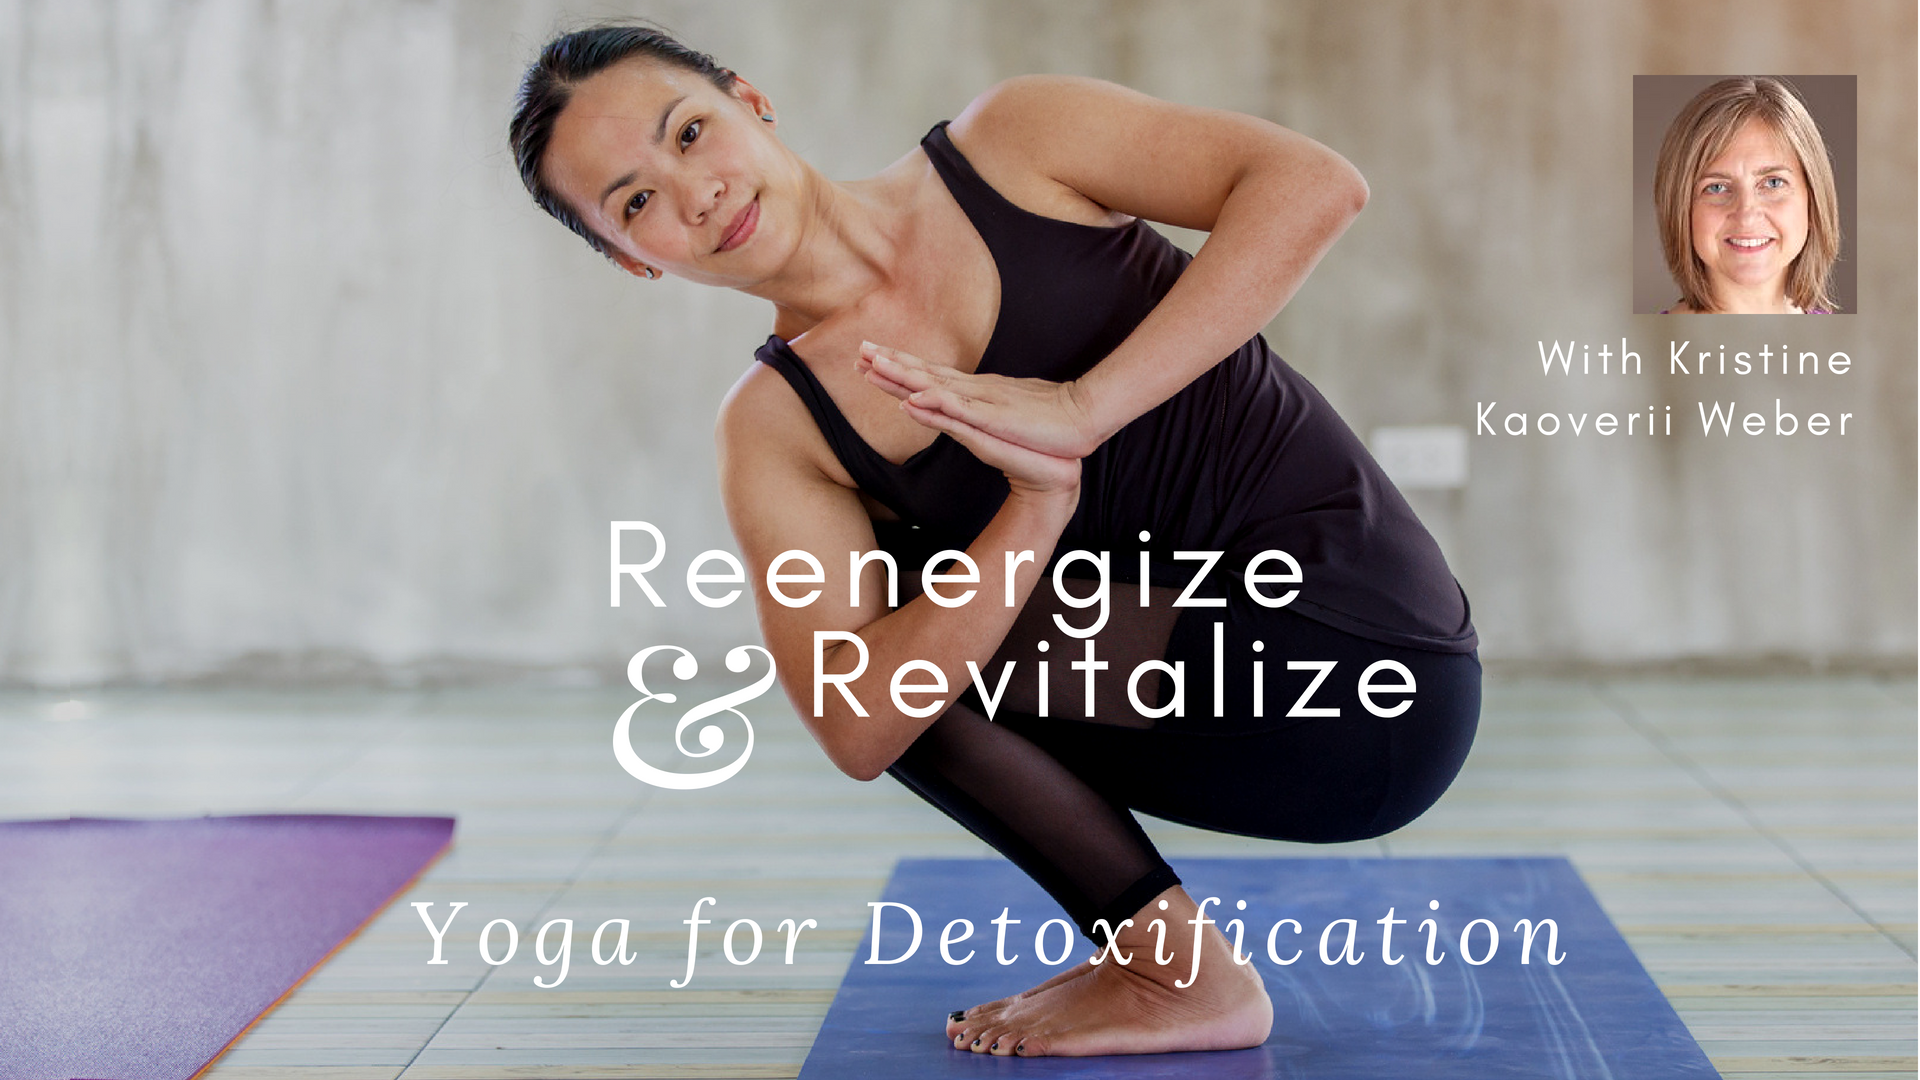 Online course Reenergize and Revitalize: Yoga for Detoxification with Kristine Kaoverii Weber